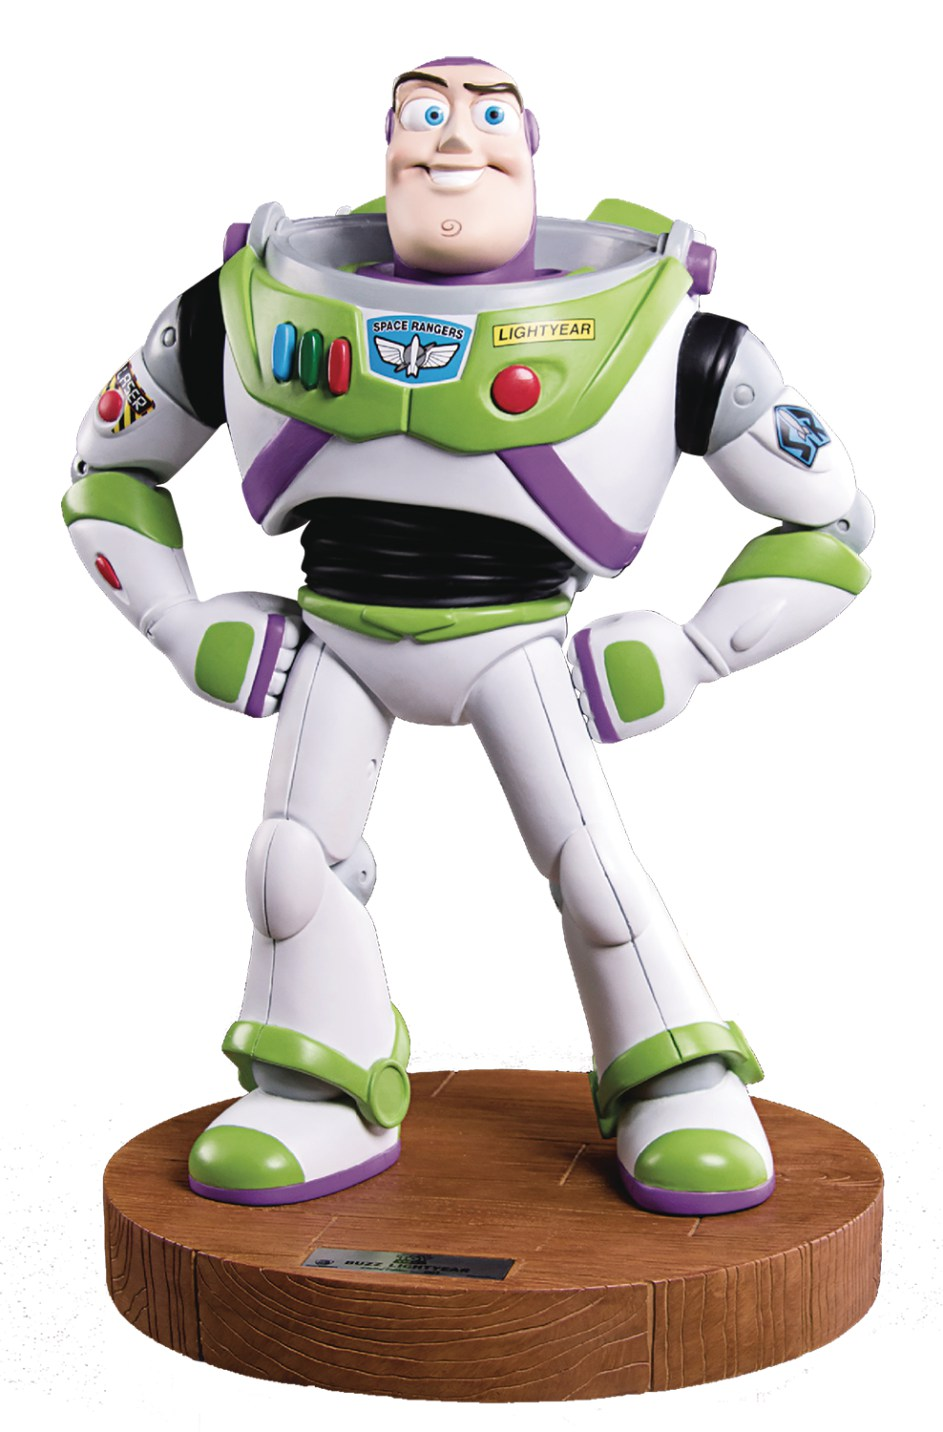 Diamond, Beast Kingdom Blast Off To Space With New PREVIEWS Exclusive Toy Story Spaceship Figures